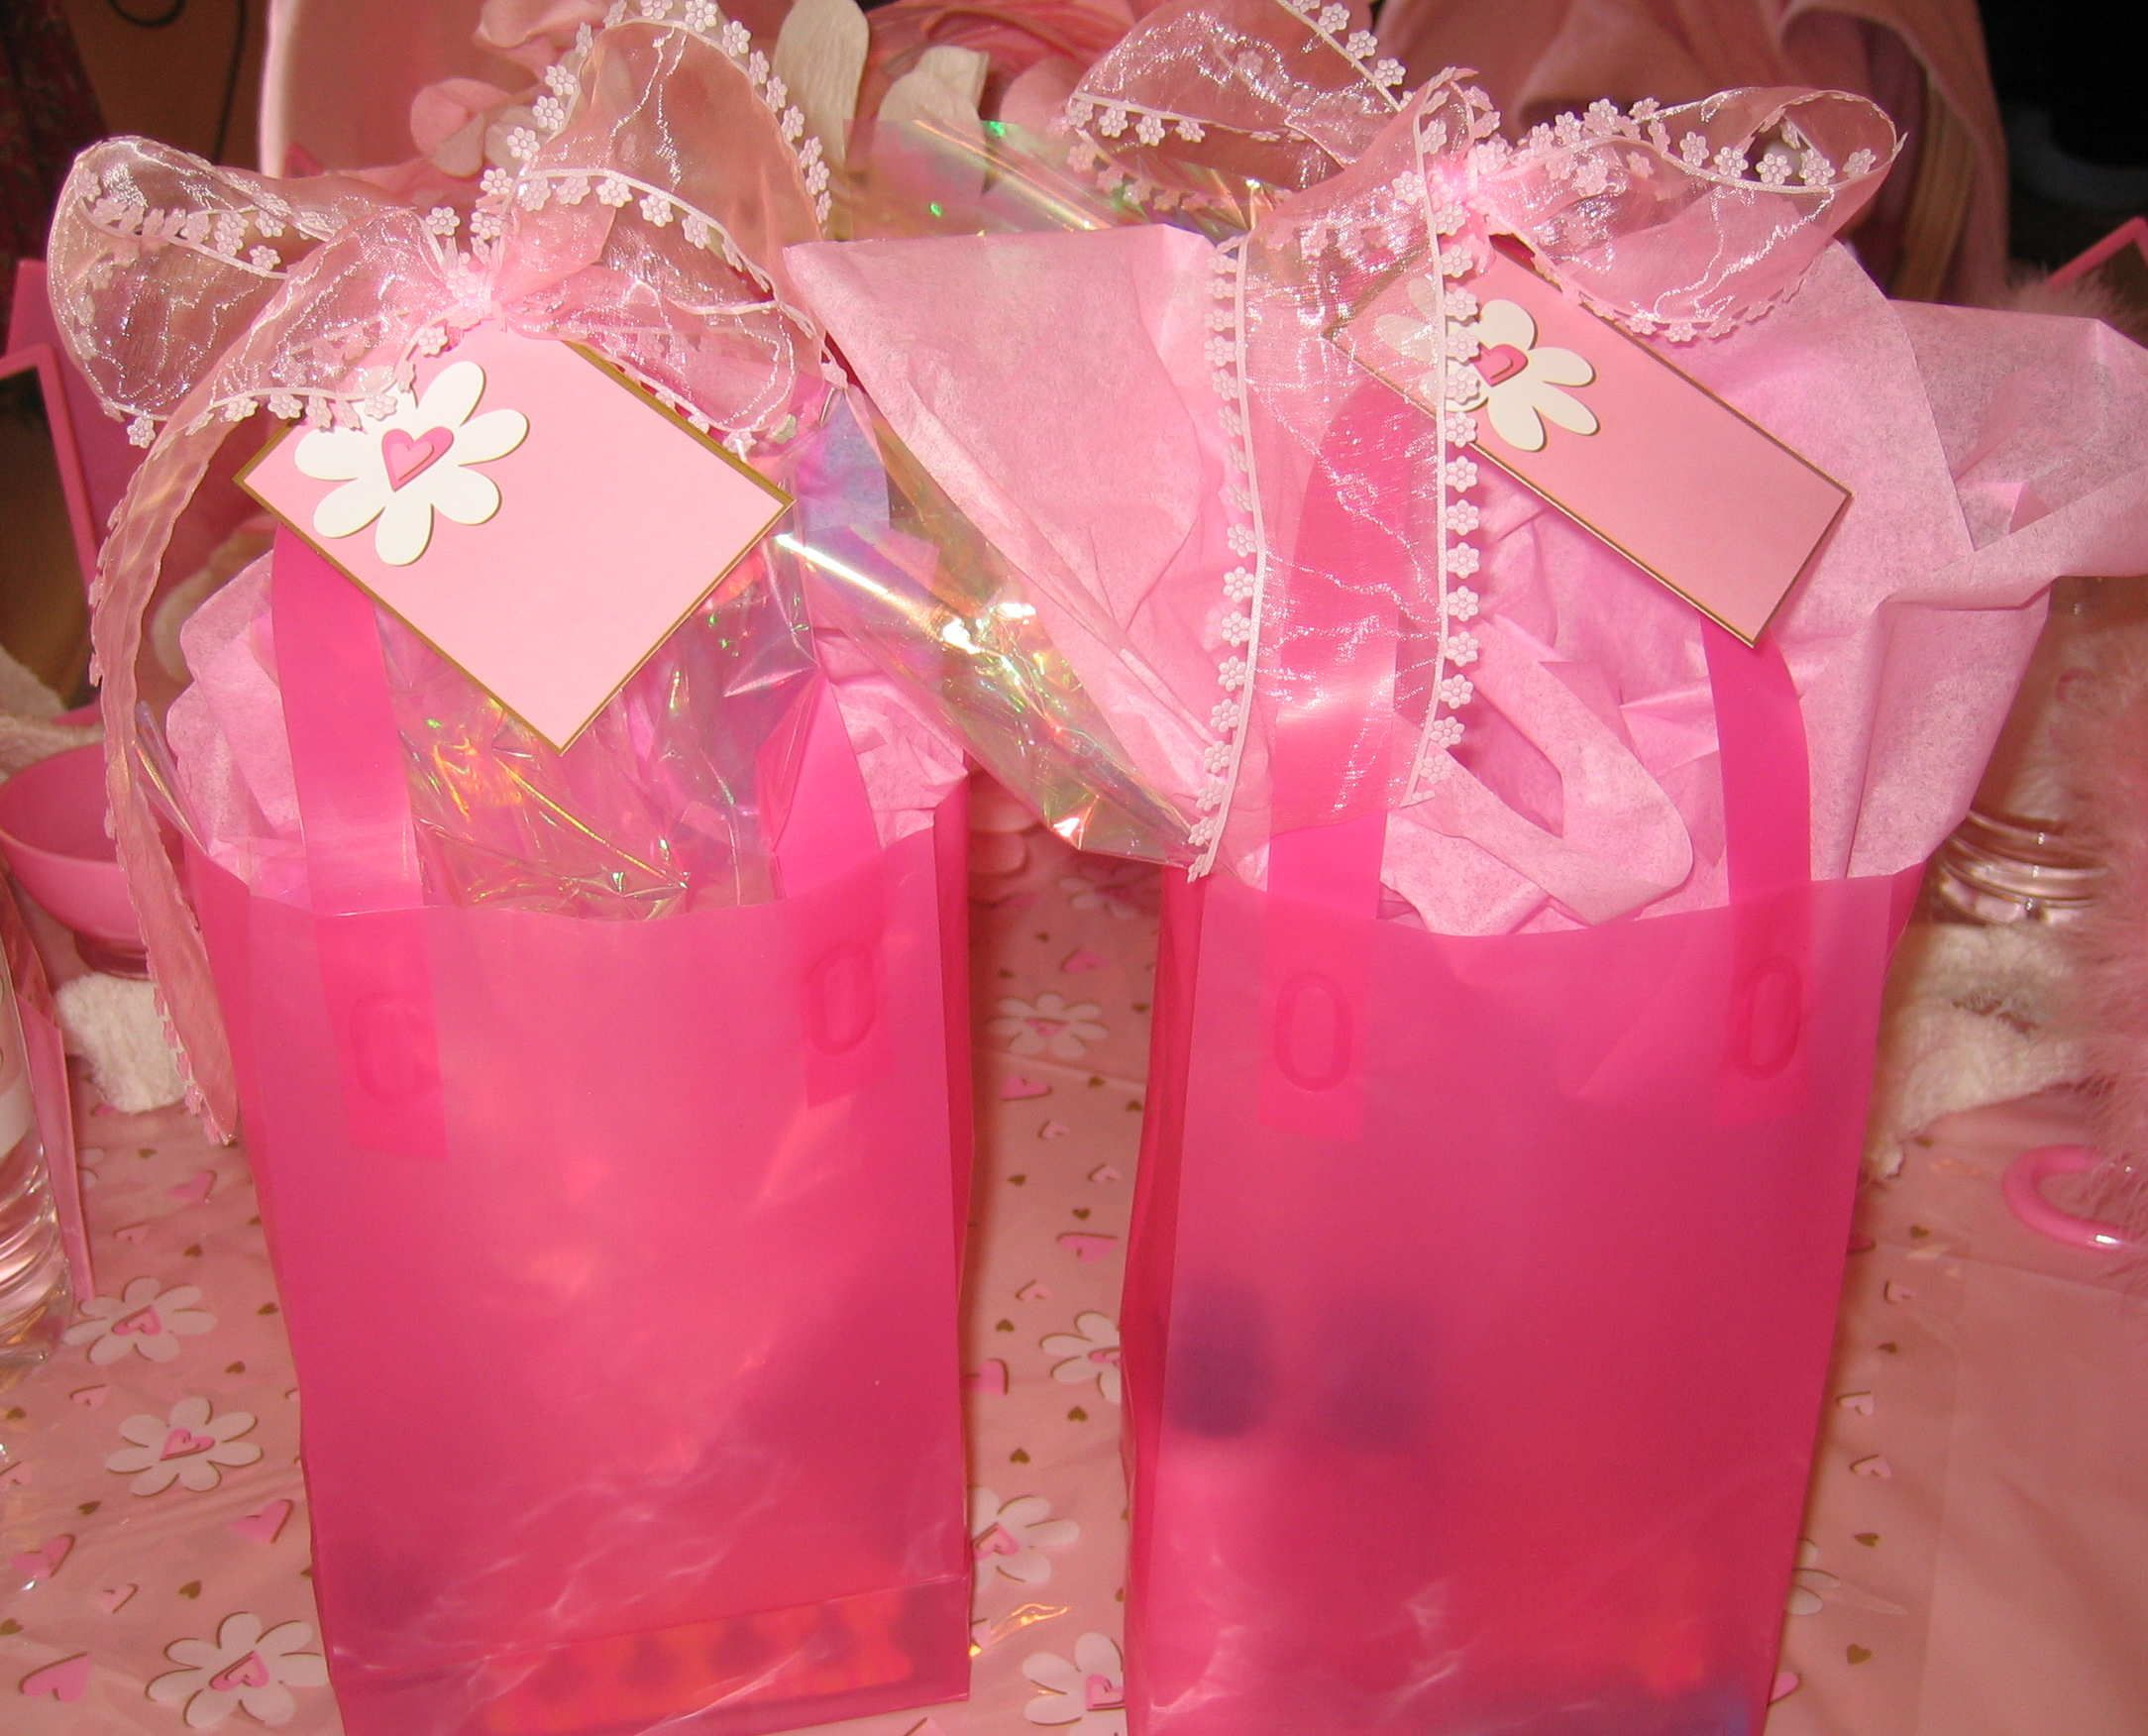 Spa Party Favors Adorable Favor Bags with ribbon and spa goodies